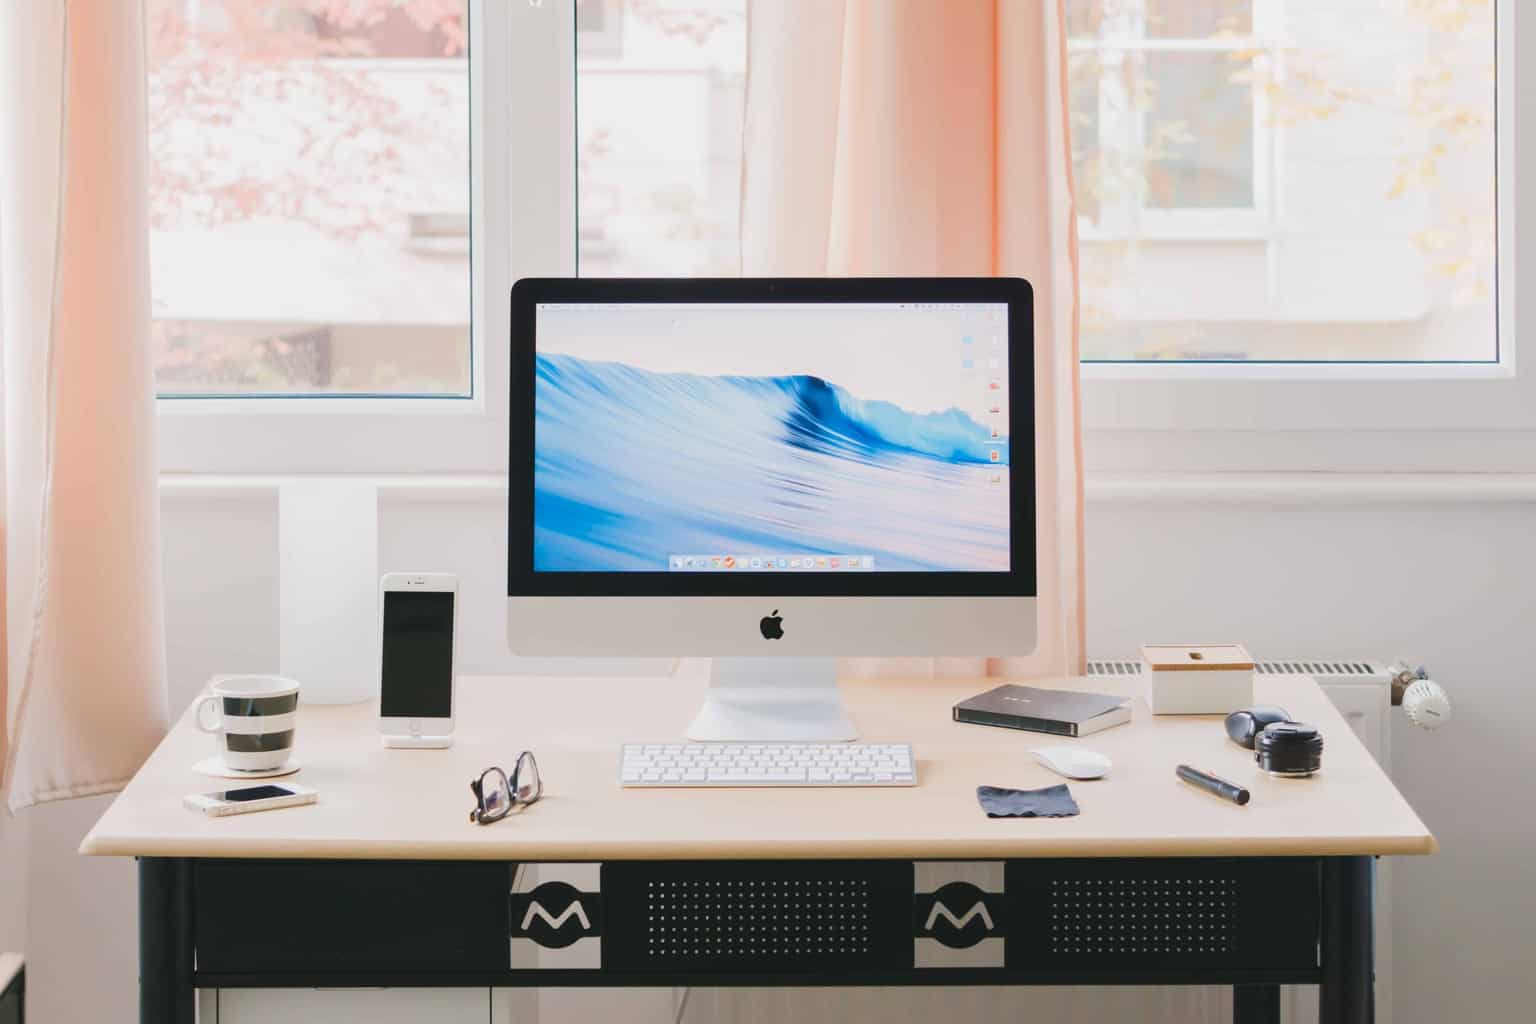 Essential items for home office